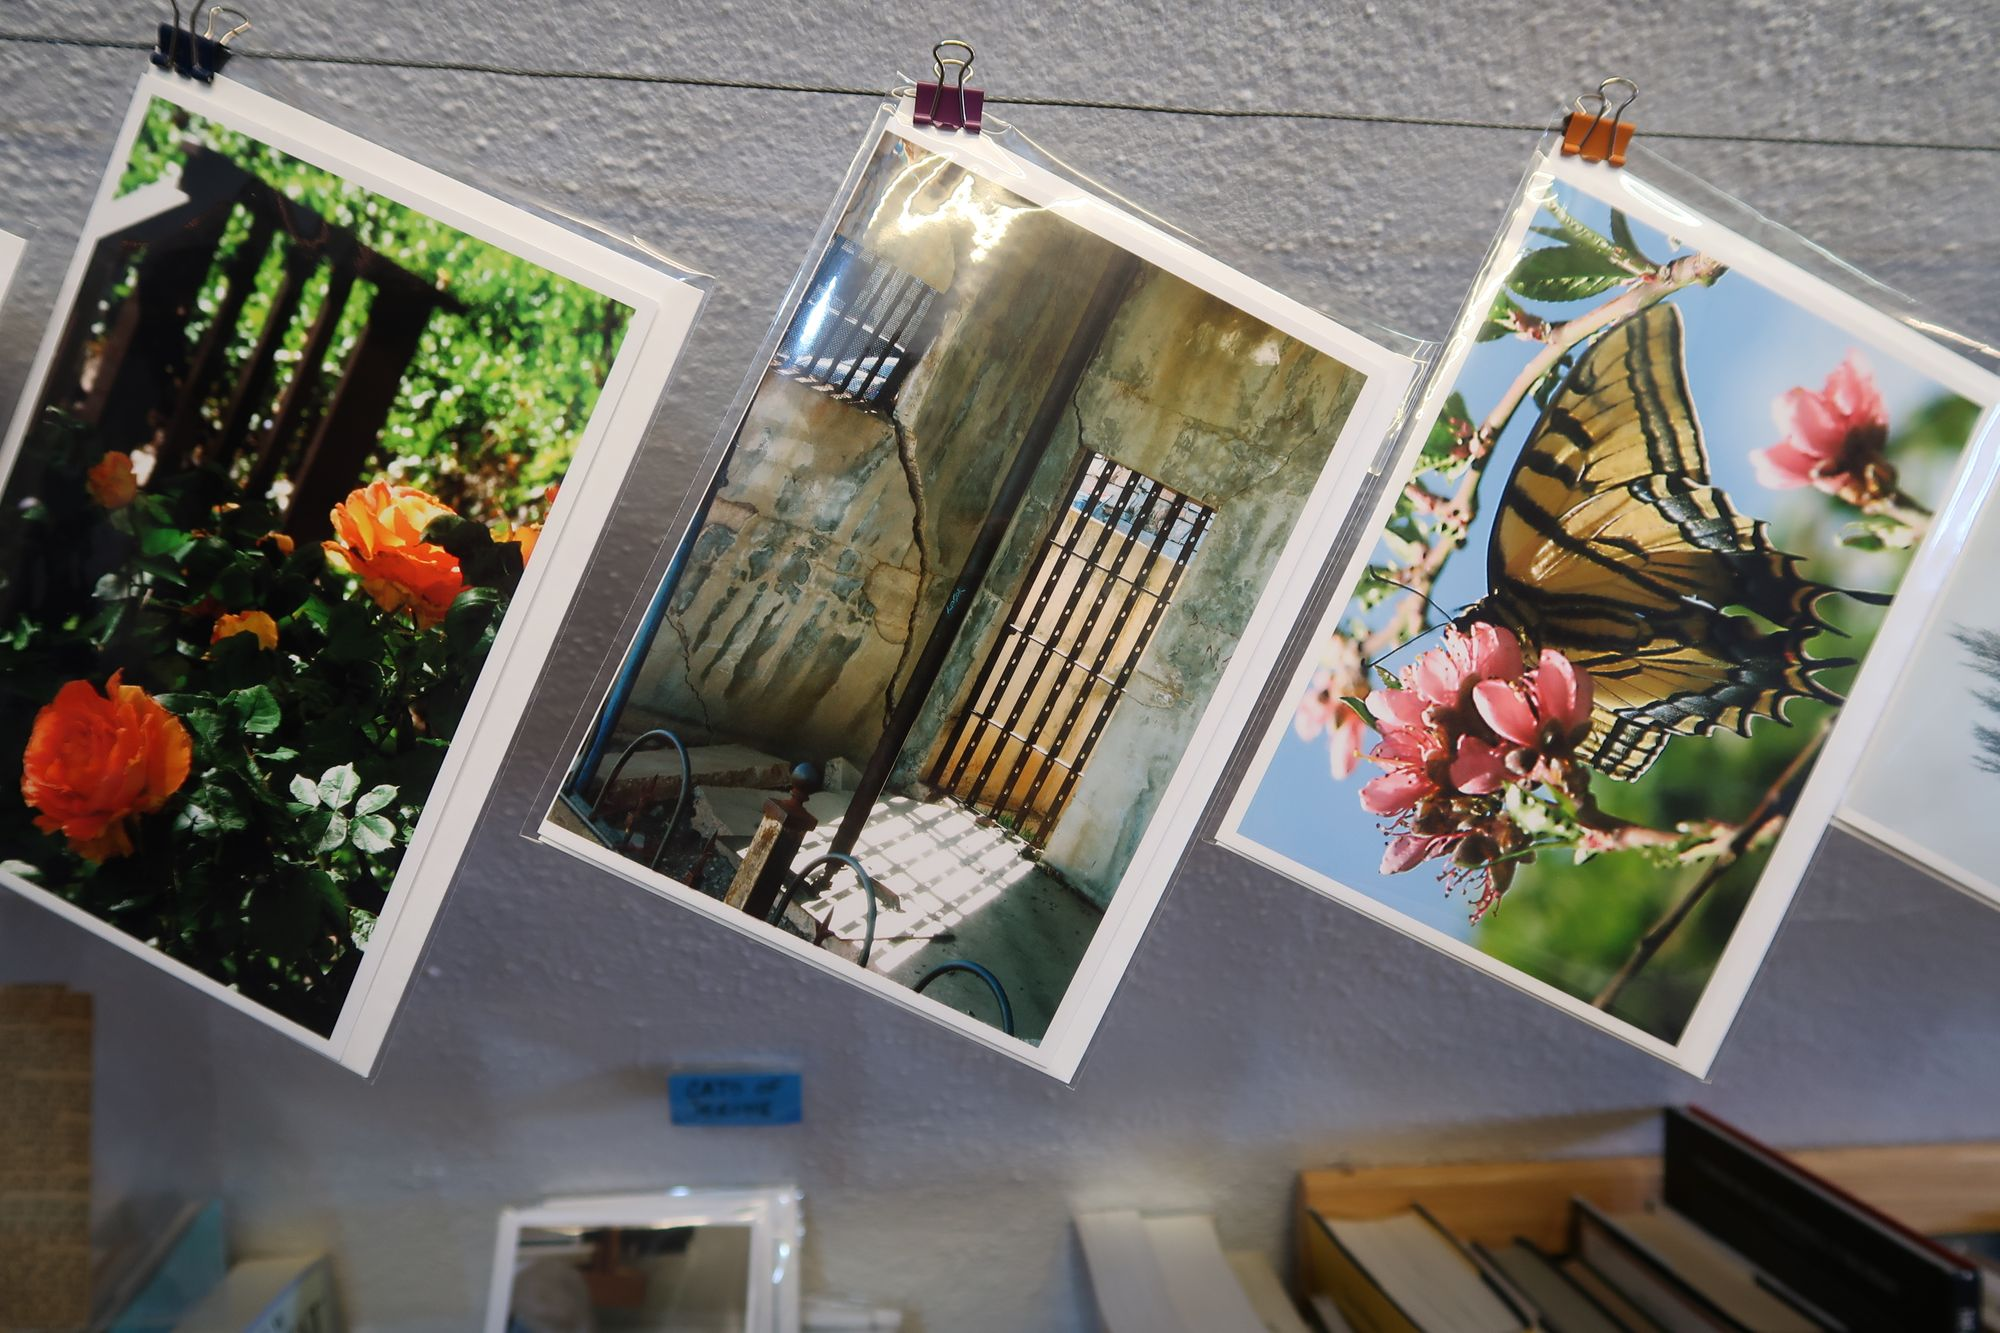 Photo of photos at Kate's Books showing the Sliding Jail at Jerome.